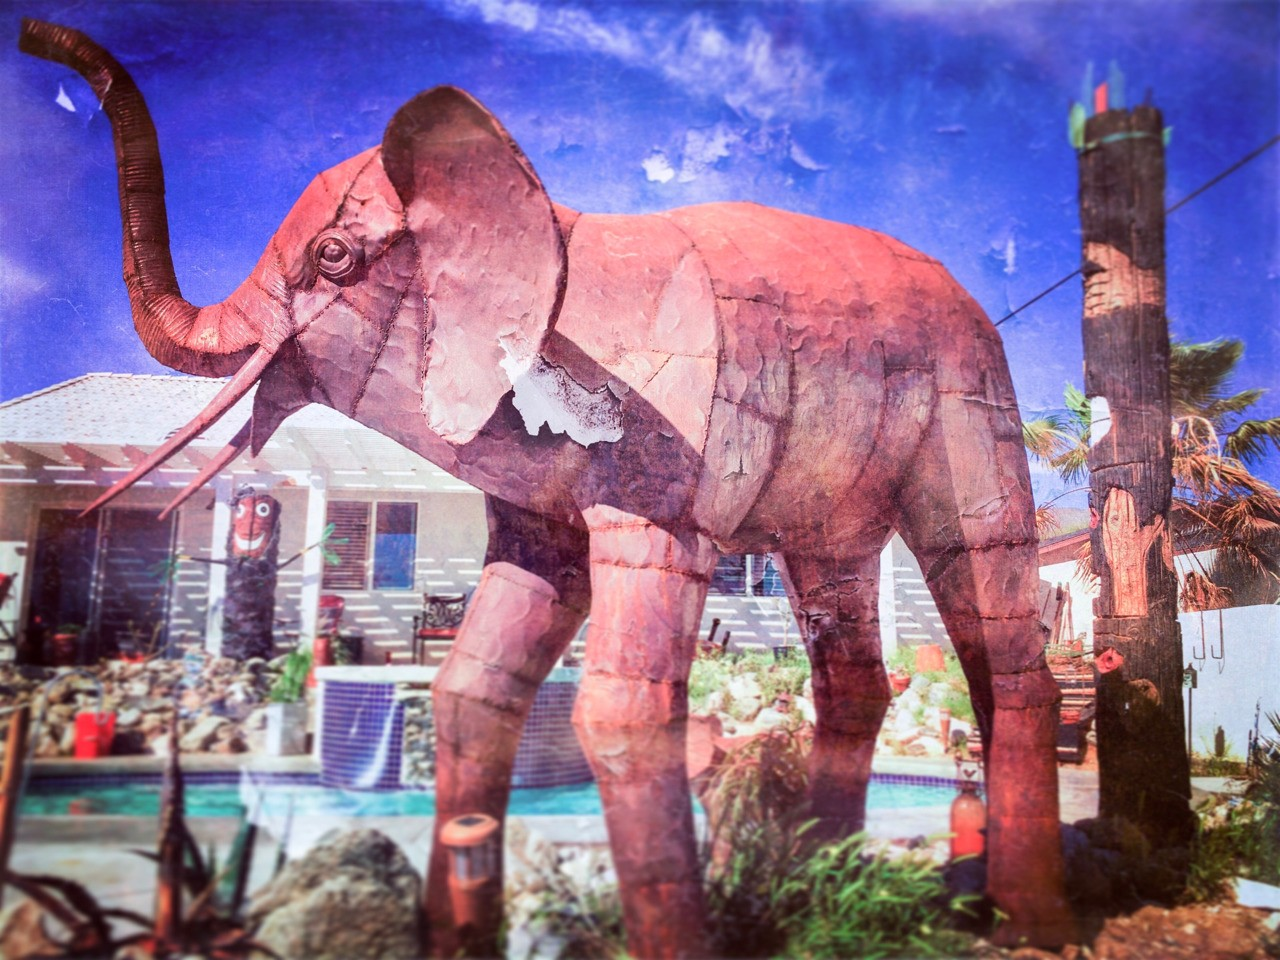 The Colonel . . It is surreal to me to see an elephant outside our bedroom window. The first time it pees in the pool though its outta here. . . #artuocastenellos #themetalcorral #banning #metal #backyard #pool #deserthotsprings #tiki #tikipole #tikitotem #jungle #desert #rusty #apple #iphone #iphone6splus #iphonography #elephant #hipstamatic #stackablesapp